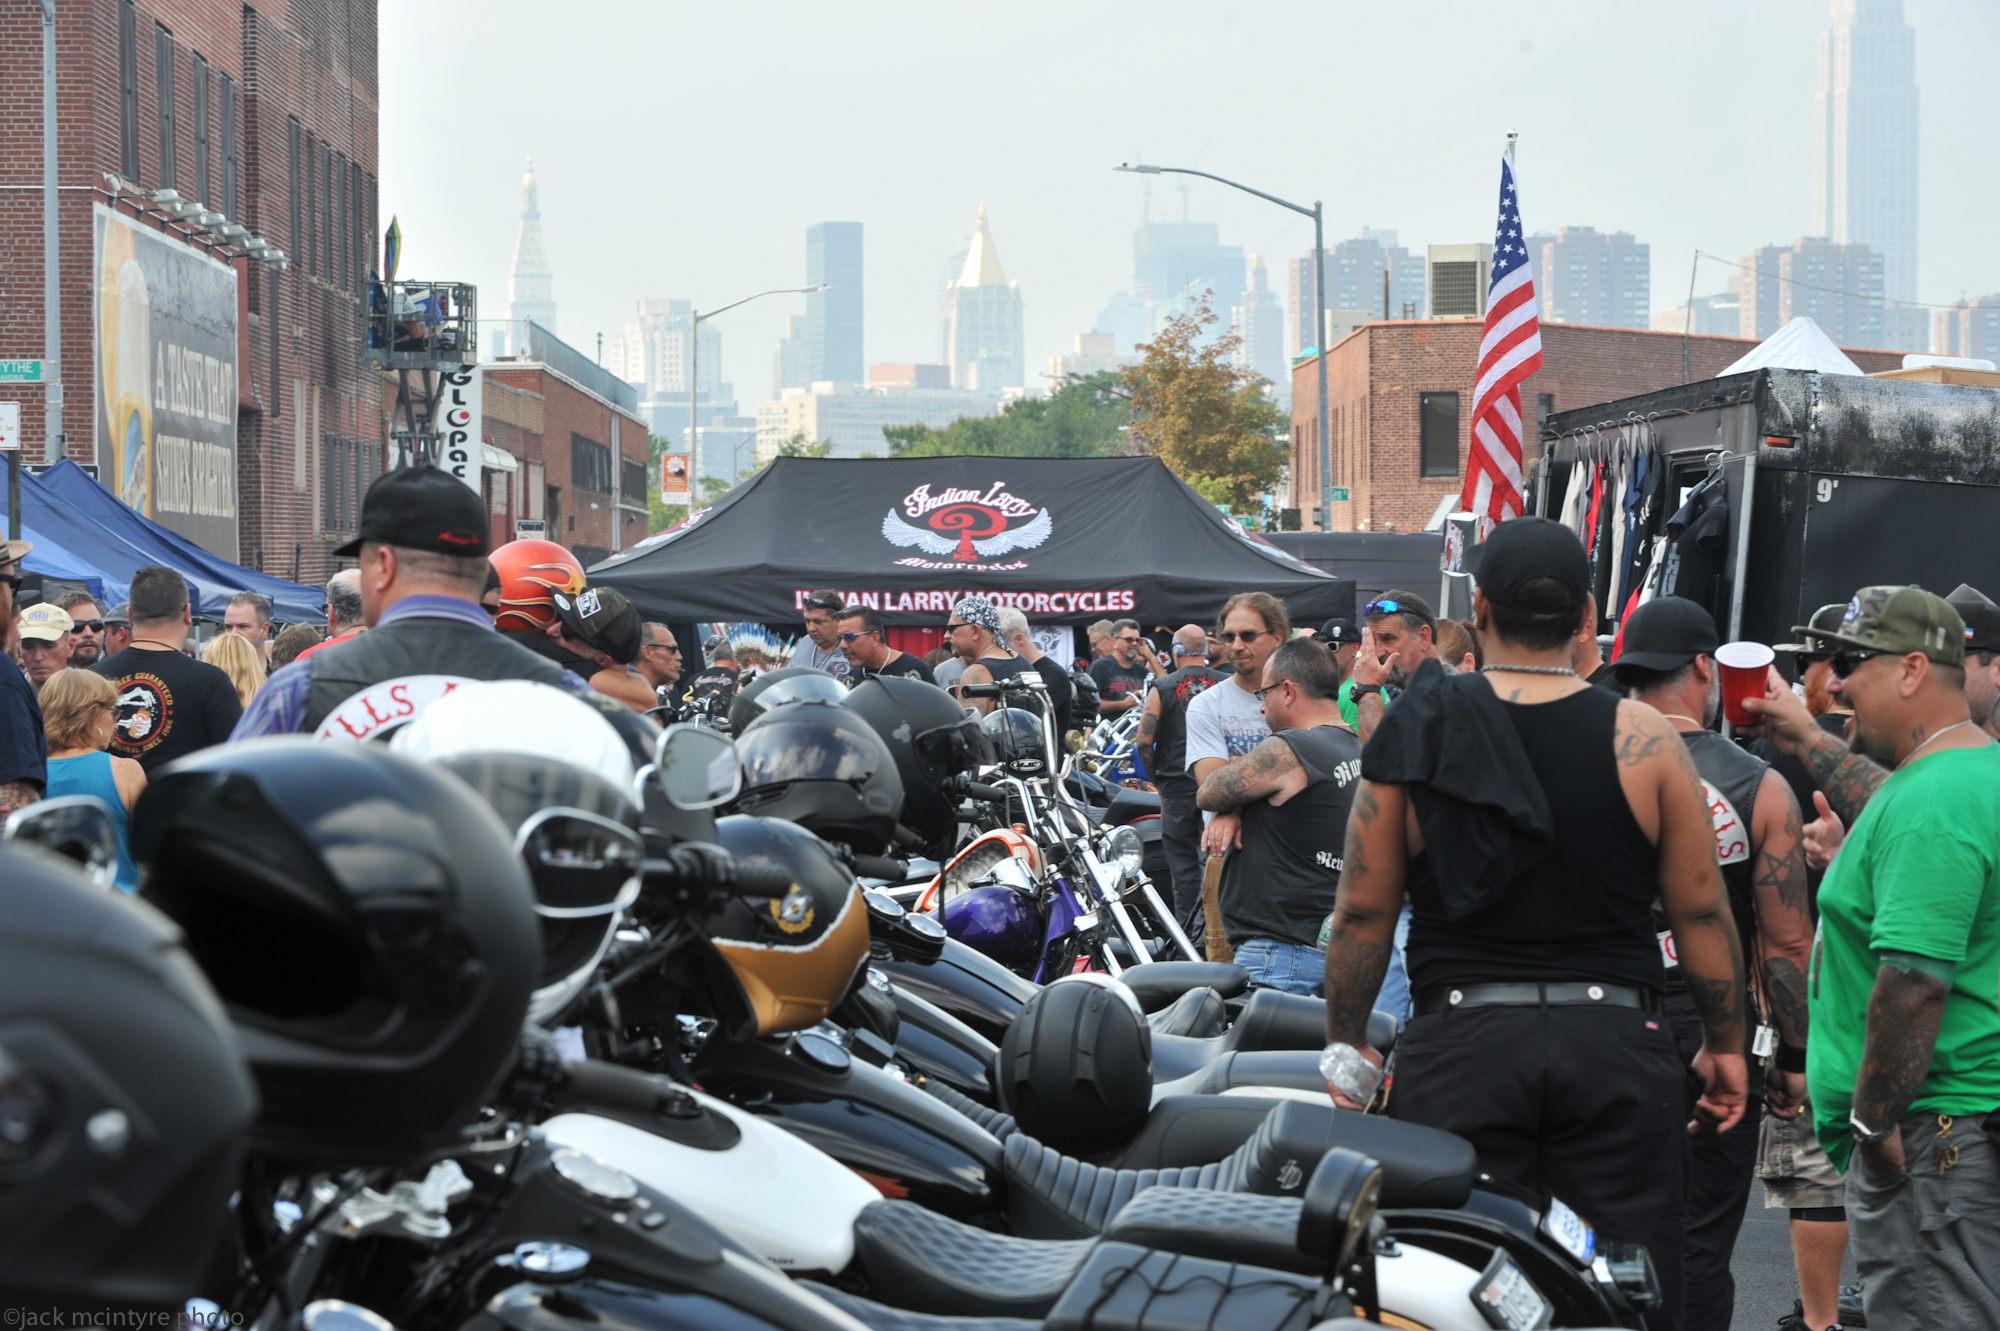 THE INDIAN LARRY MOTORCYCLES GREASE MONKEY BLOCK PARTY 2017